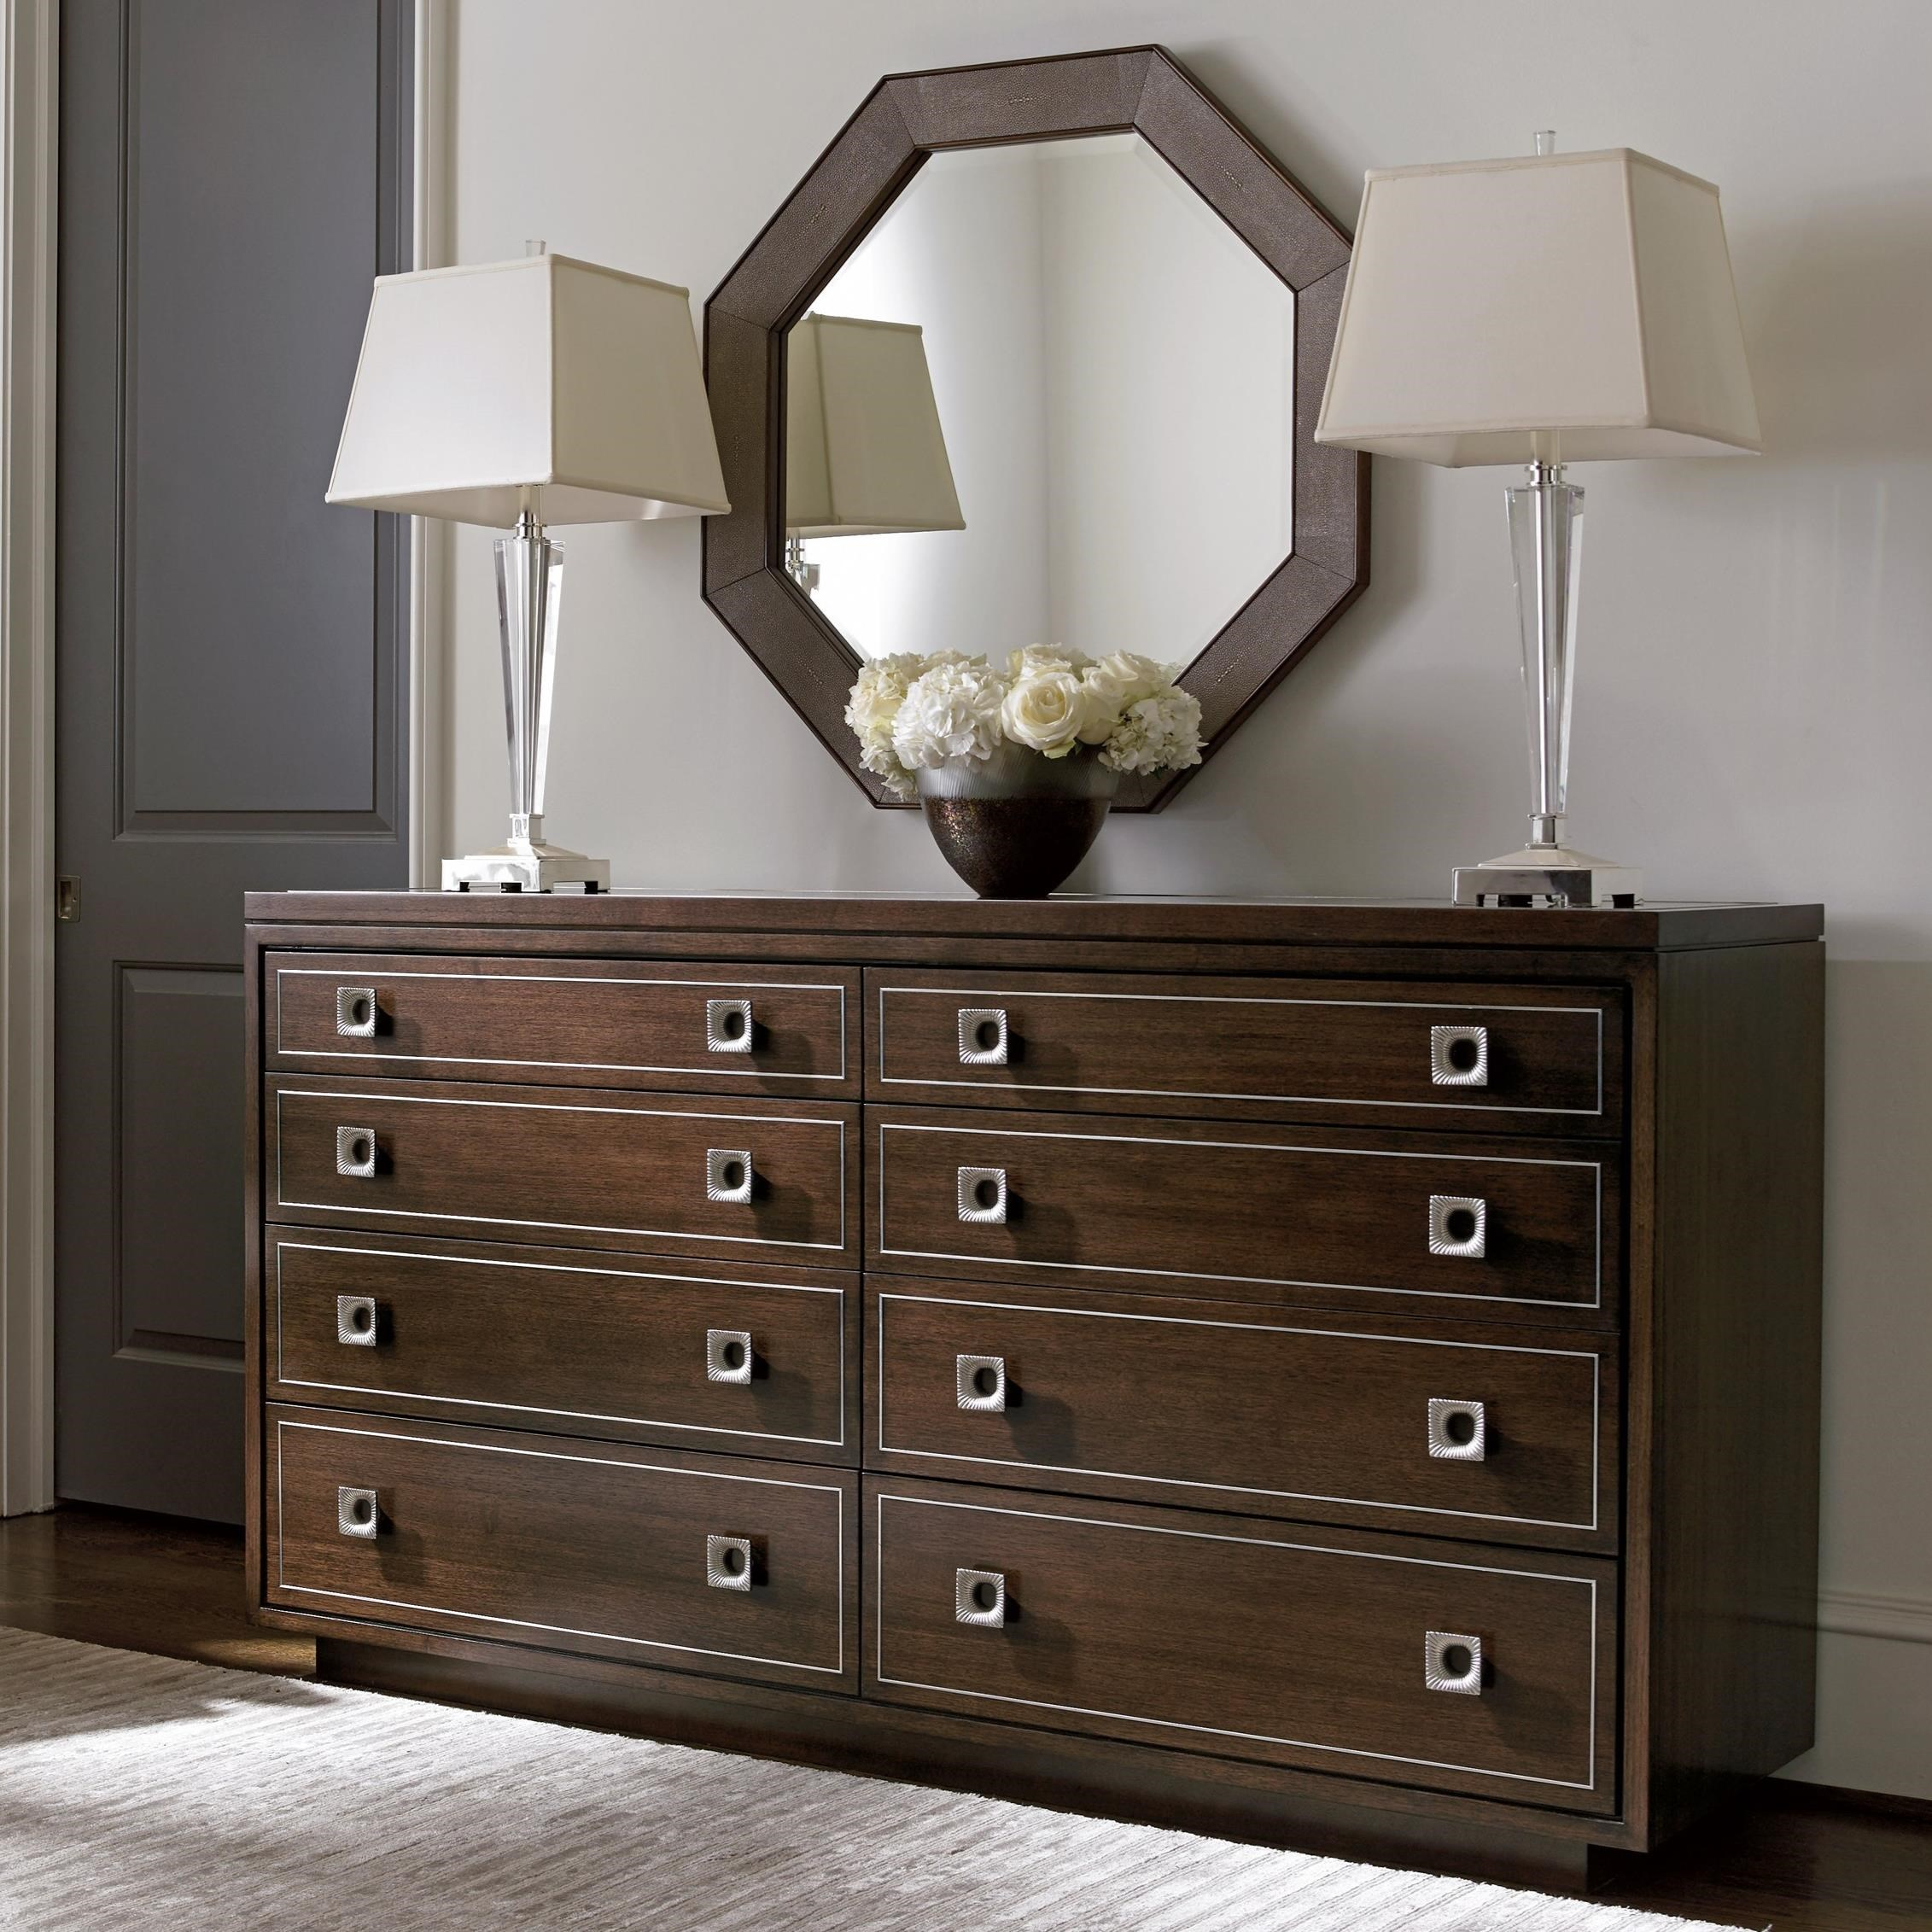 MacArthur Park Montage Dresser and Riva Mirror Set by Lexington at Johnny Janosik